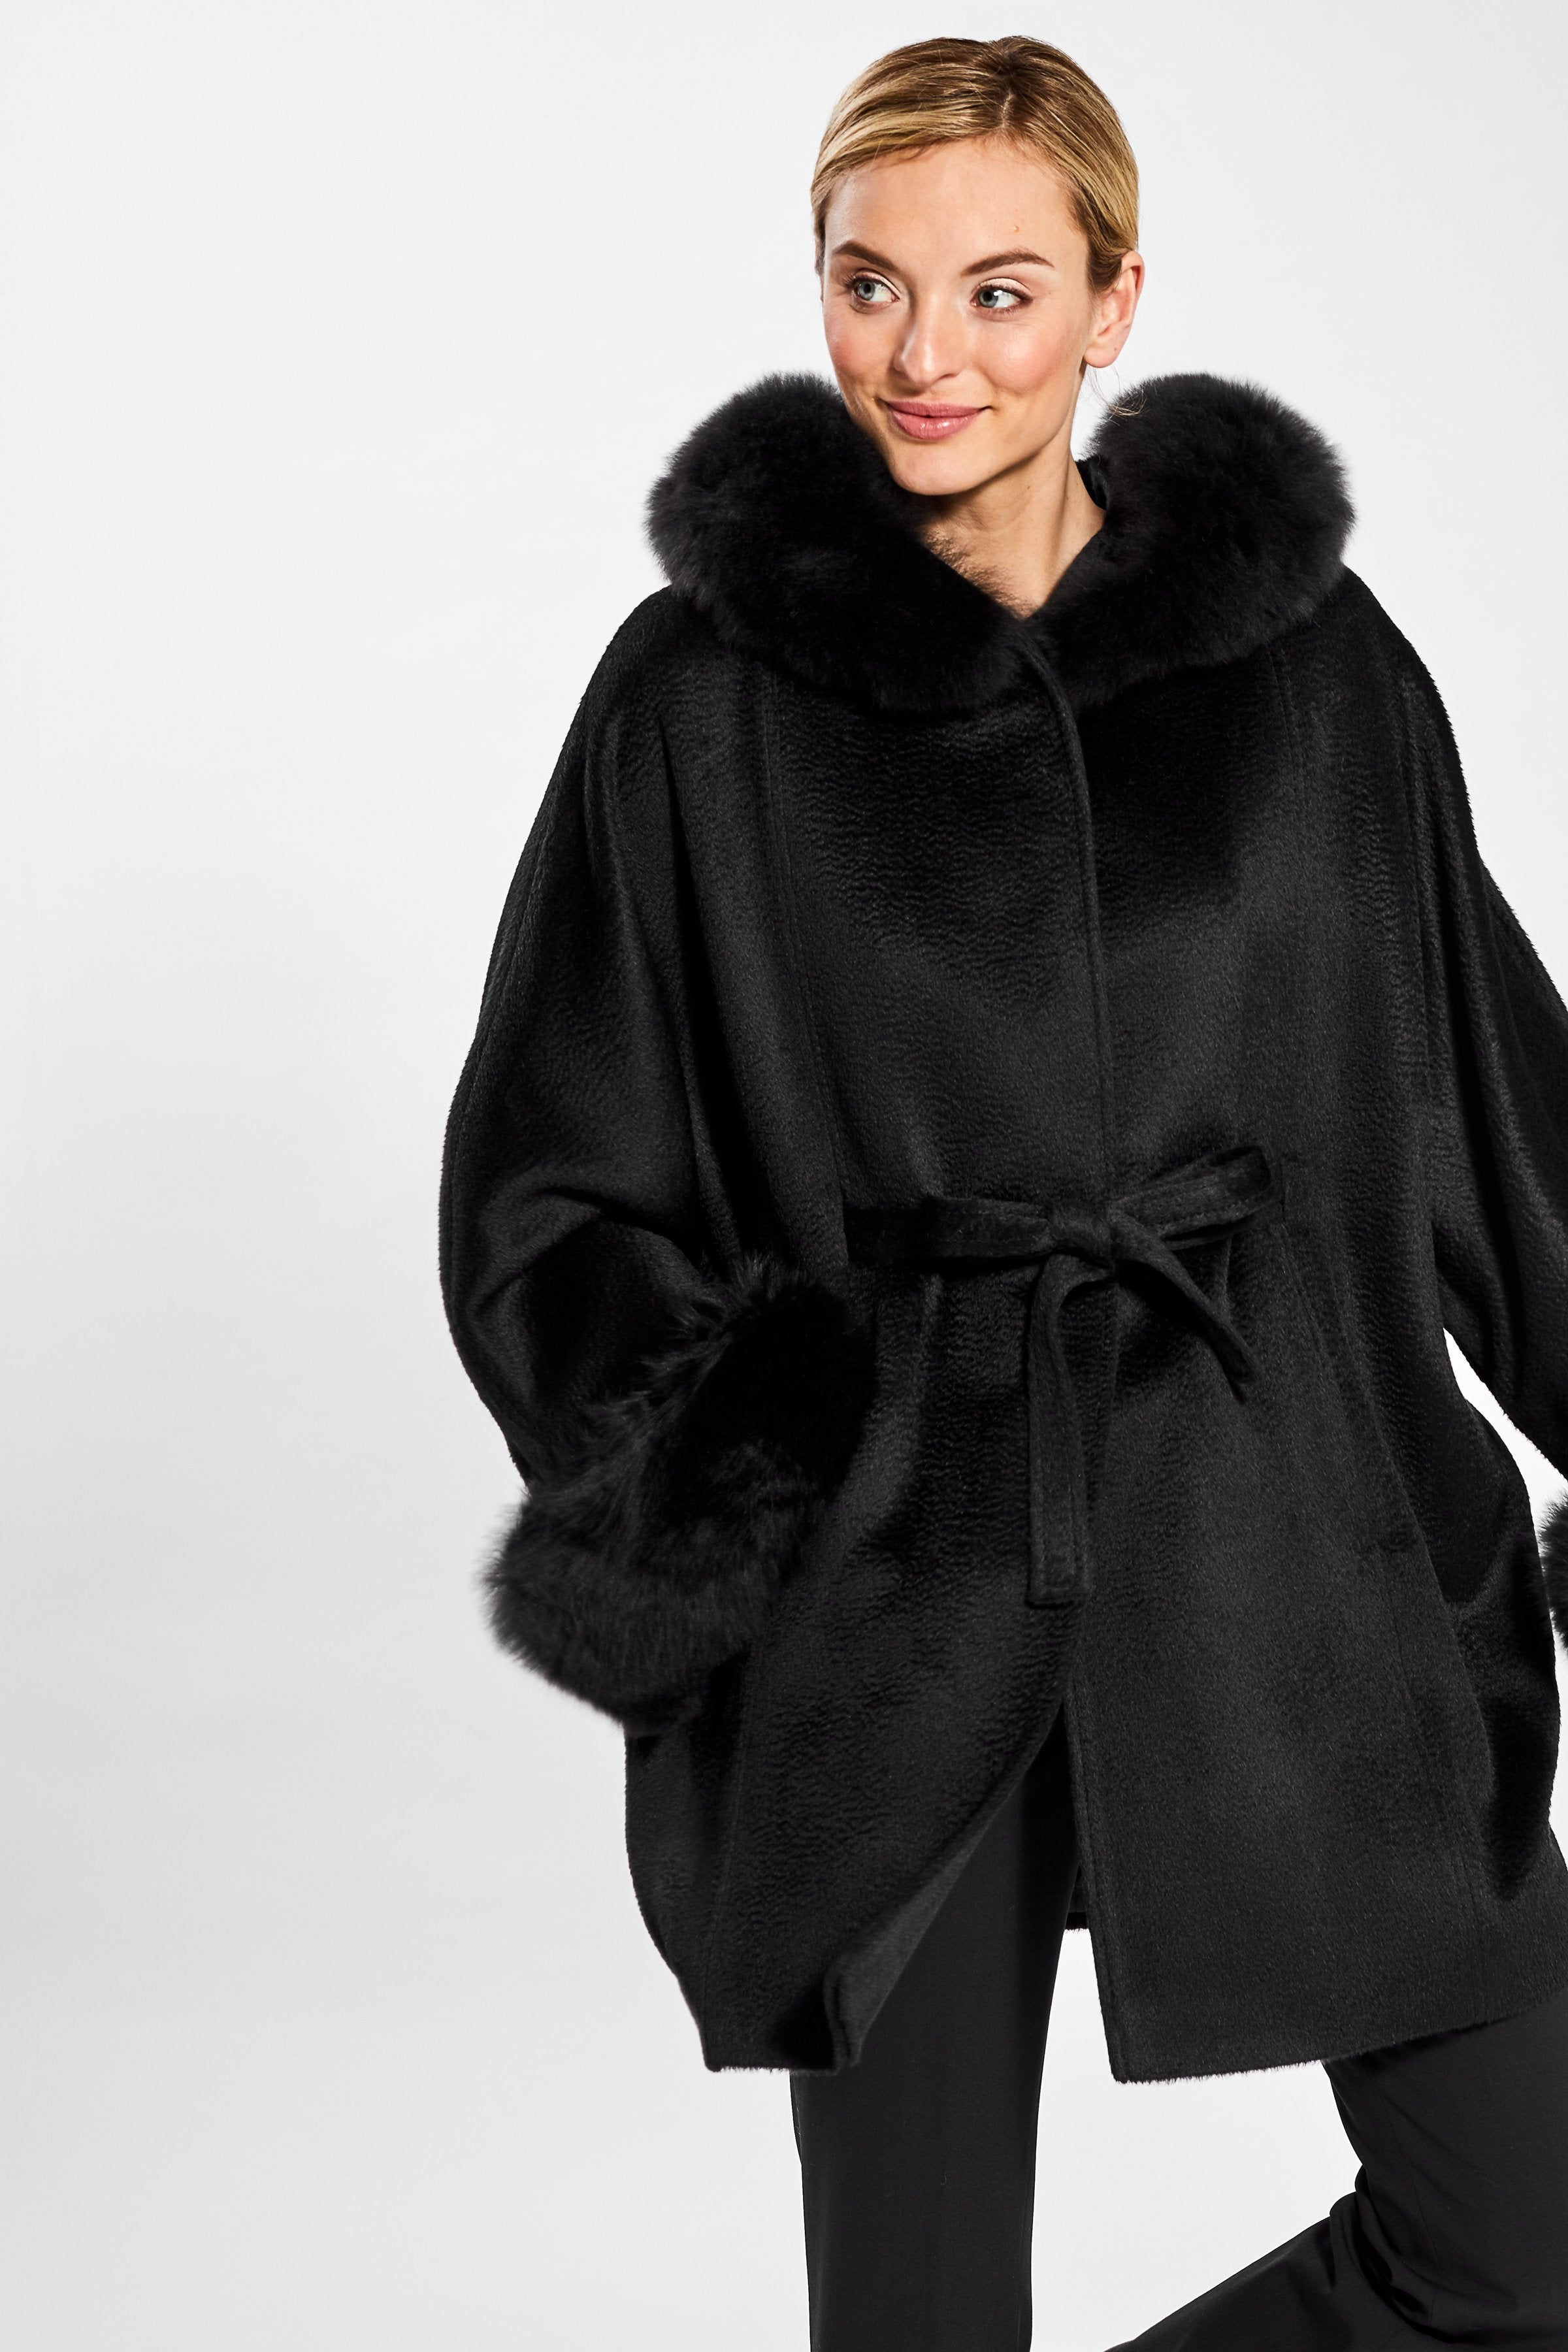 Oversized Coat with Fur Hood and Cuffs, Black